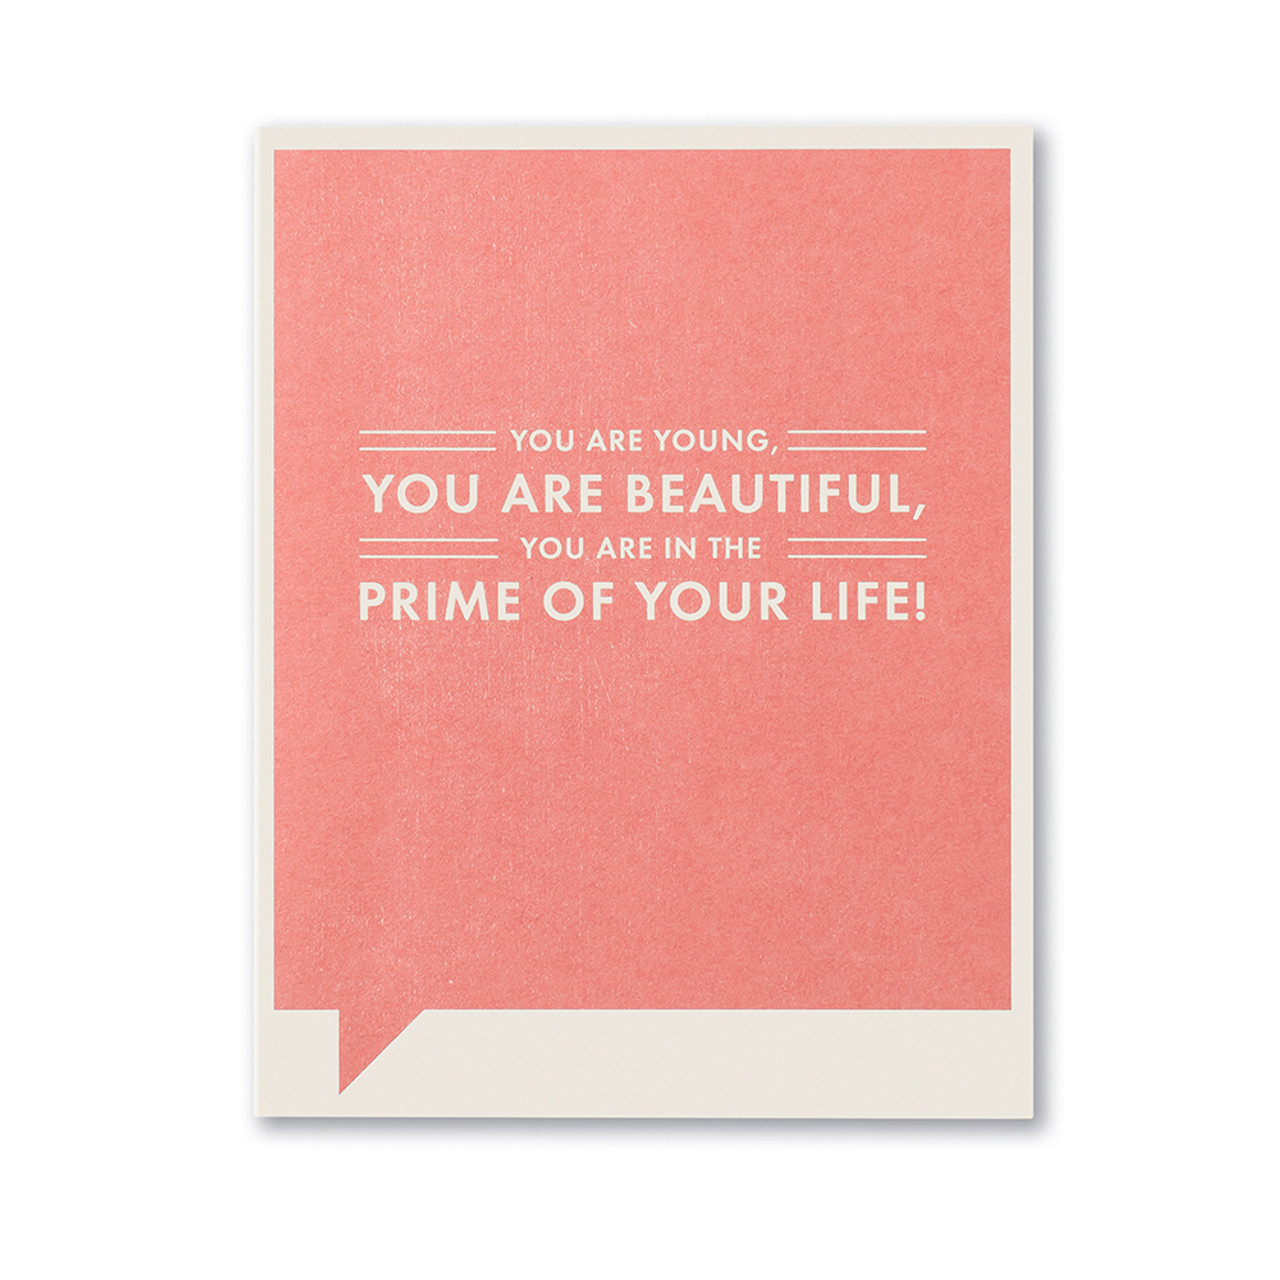 aa7499ab14d6 You are young, you are beautiful, you are in the prime of your life!